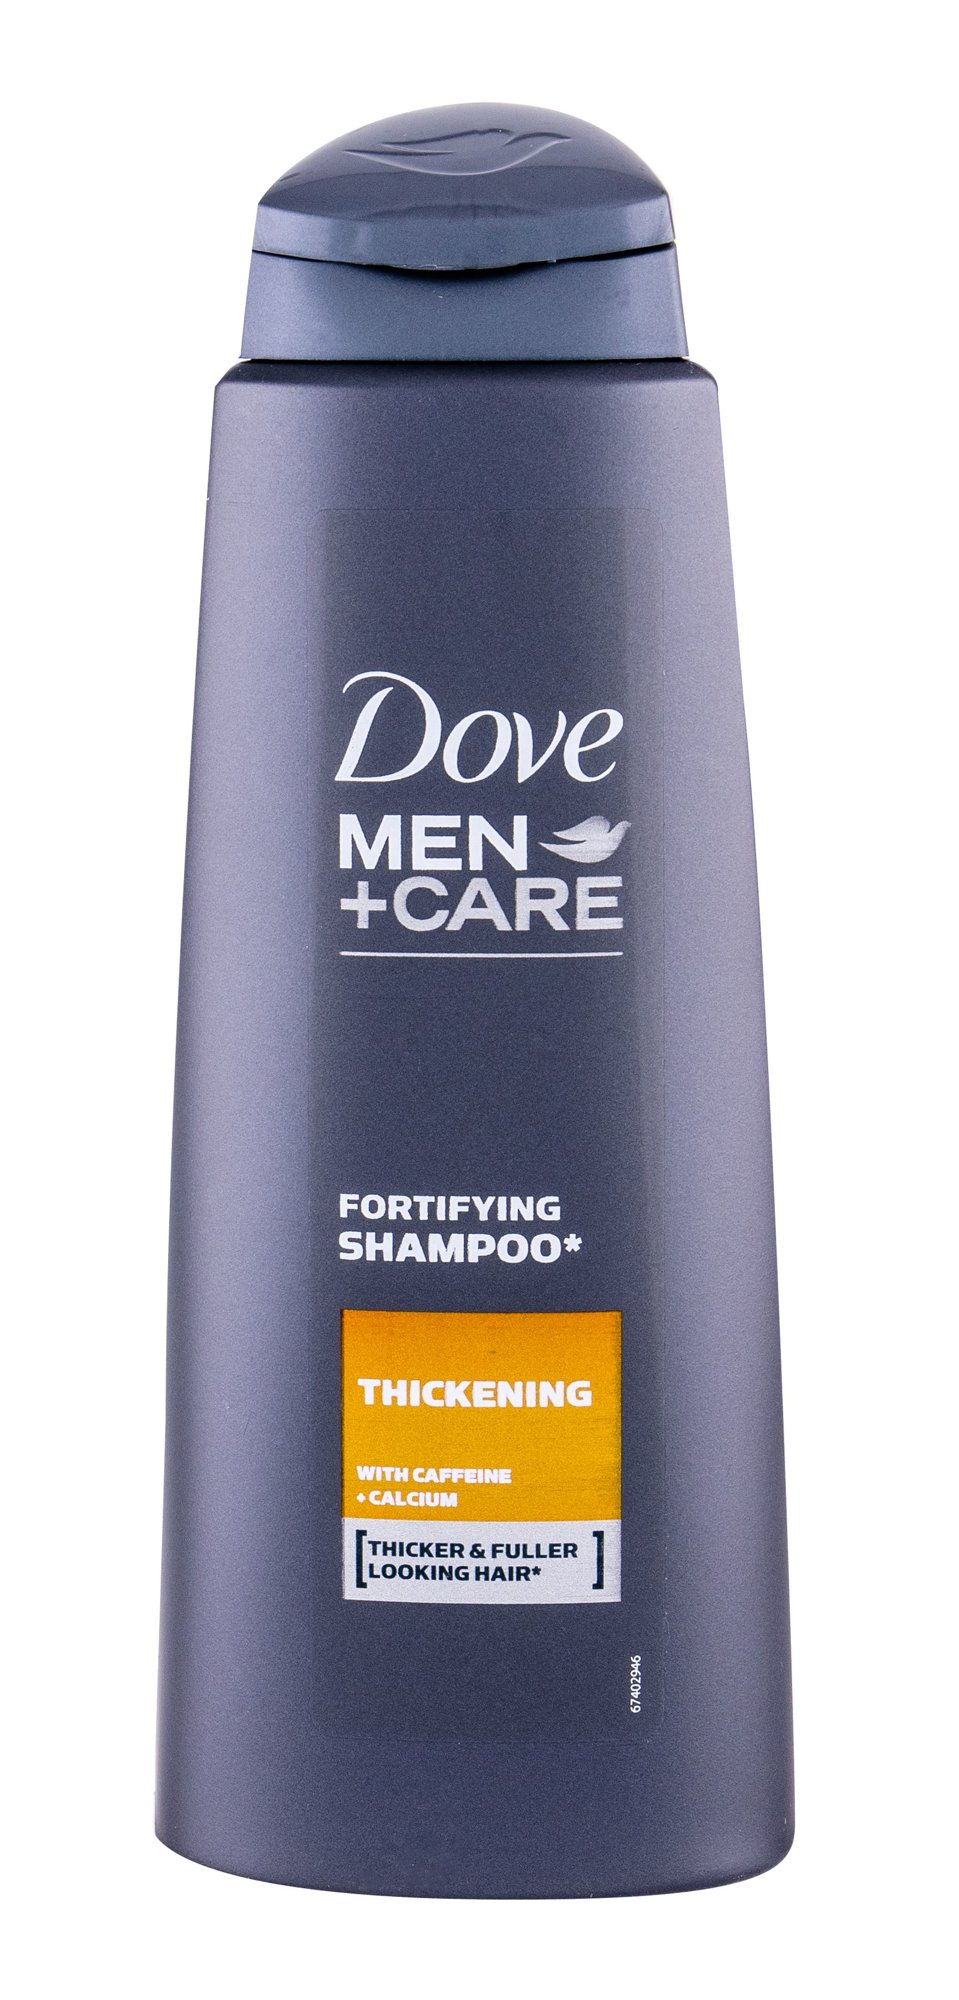 Dove Men + Care Thickening, Sampon 400ml